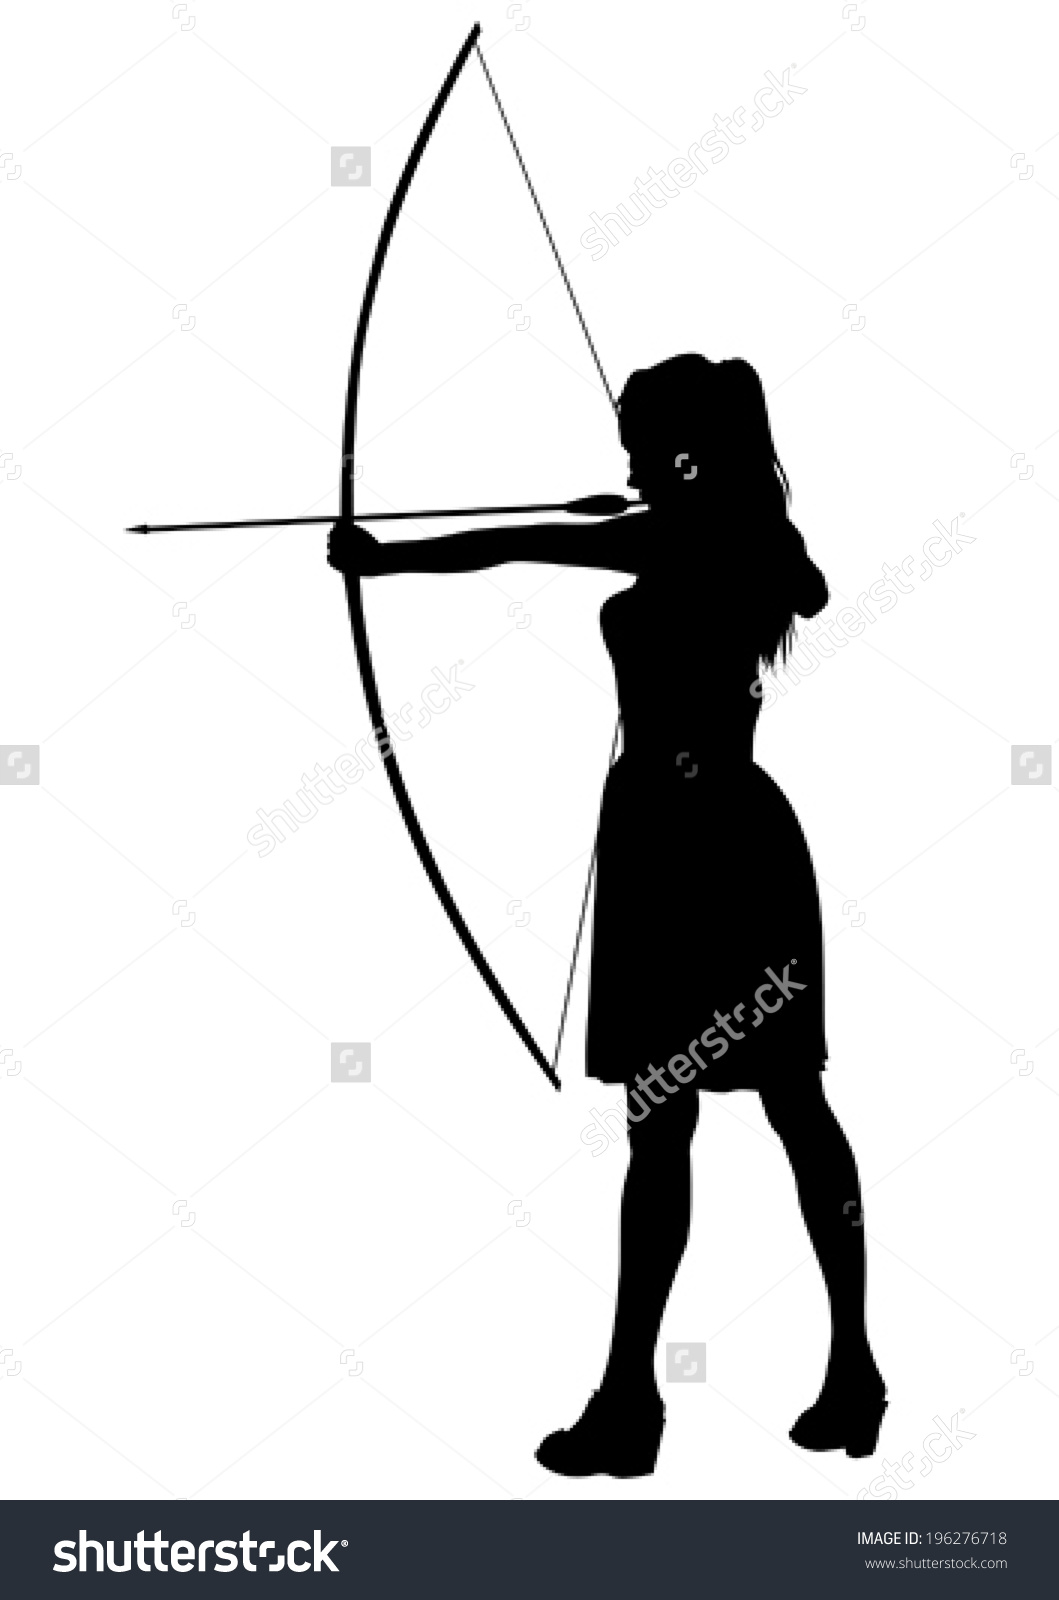 Silhouette Girl Bow On White Background Stock Vector 196276718.